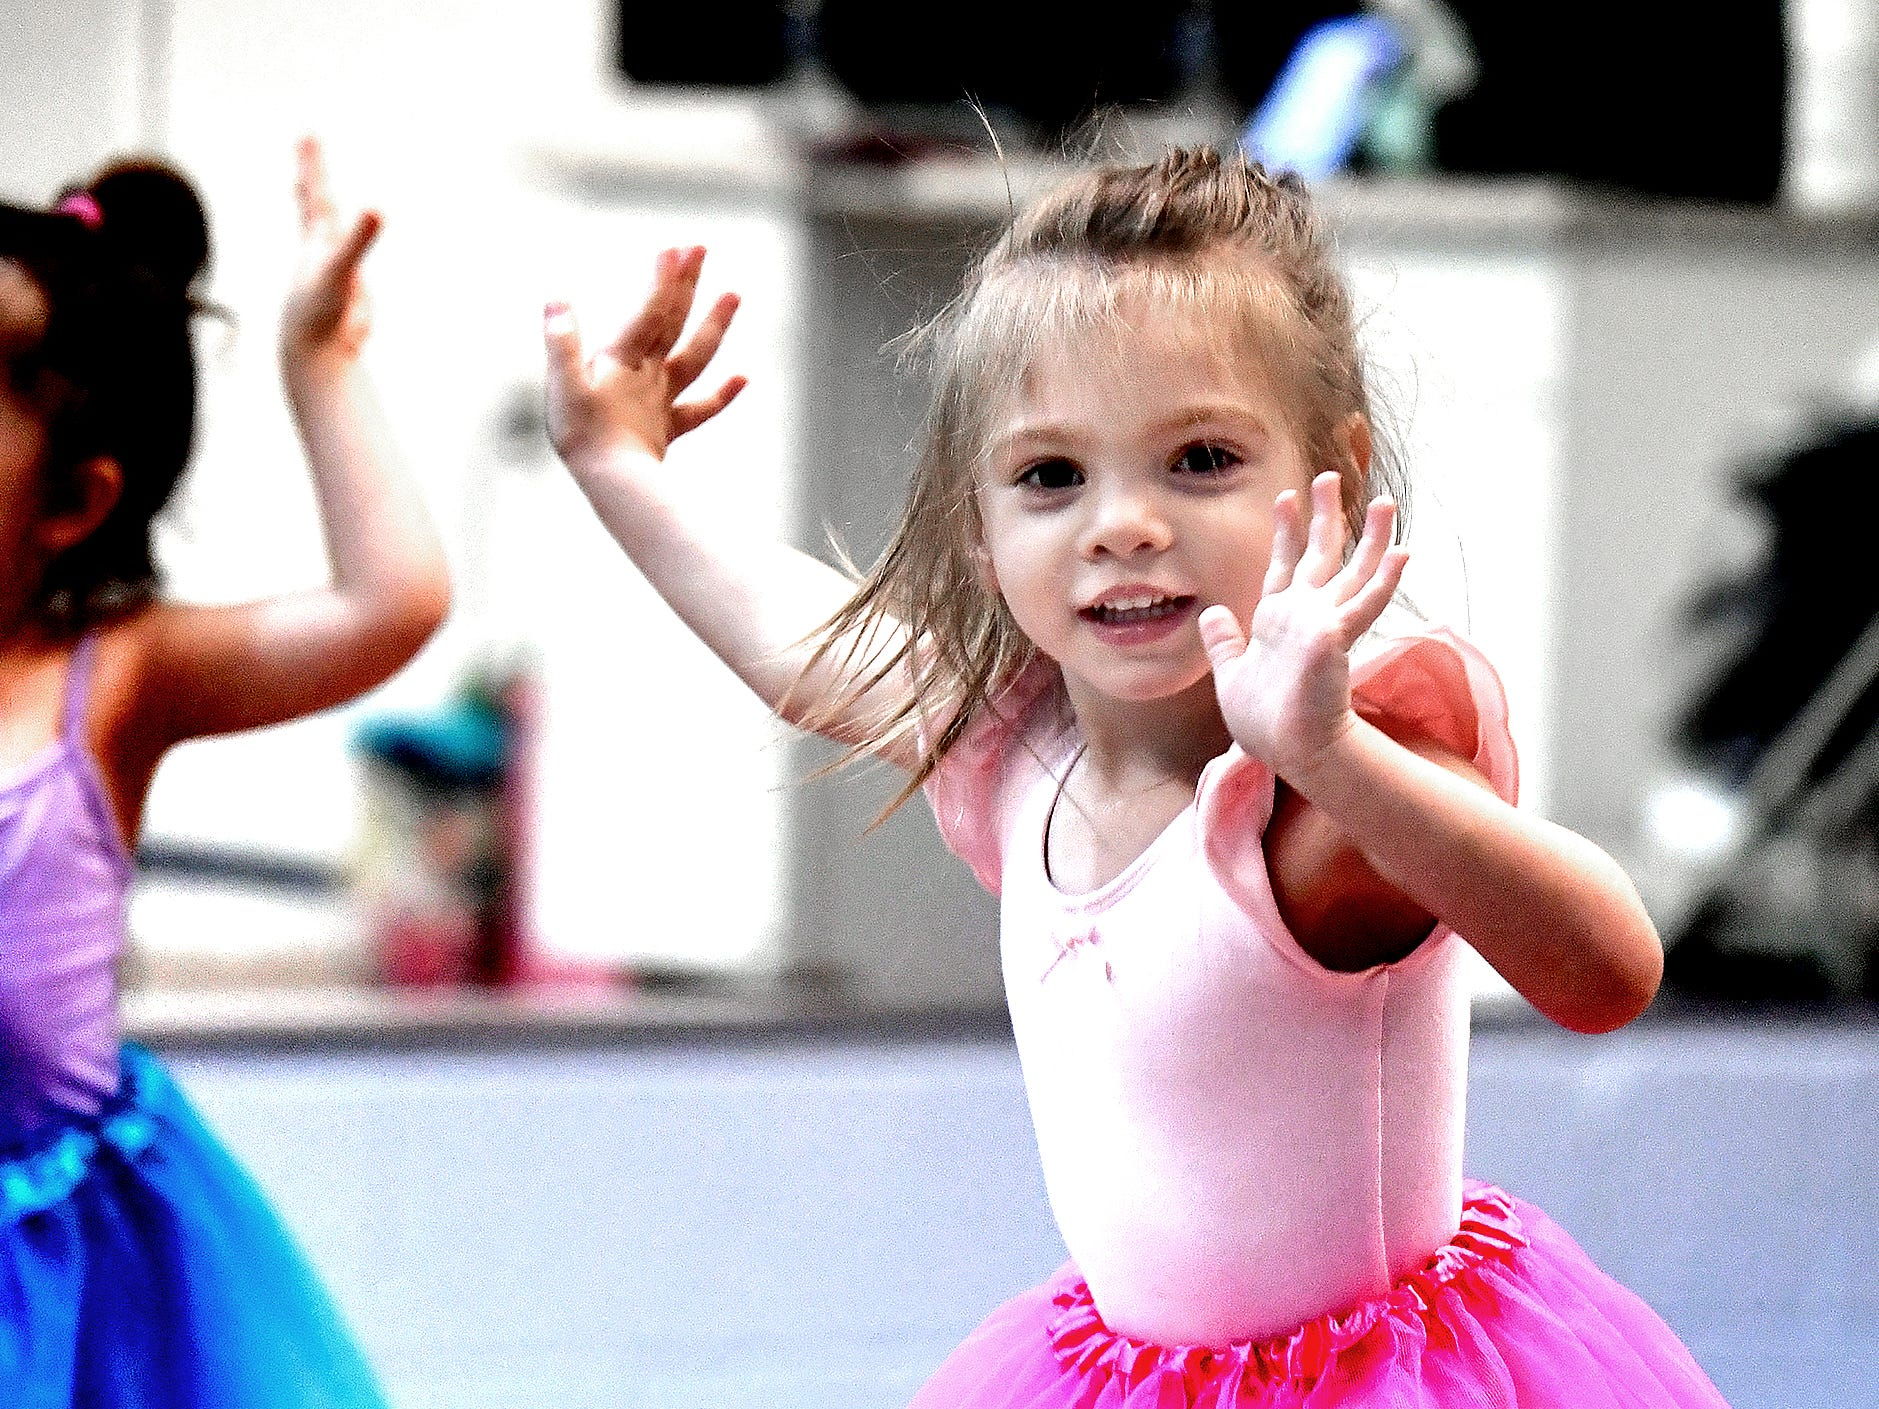 Aundrea Baughman, 3, of Dallastown, dances during the Twinkle Babies class at Greater York Dance Thursday, April 4, 2019. The four-week program, for children aged 2 to 4, is part of the Twinkle Star Dance Program for early childhood dancers. Bill Kalina photo